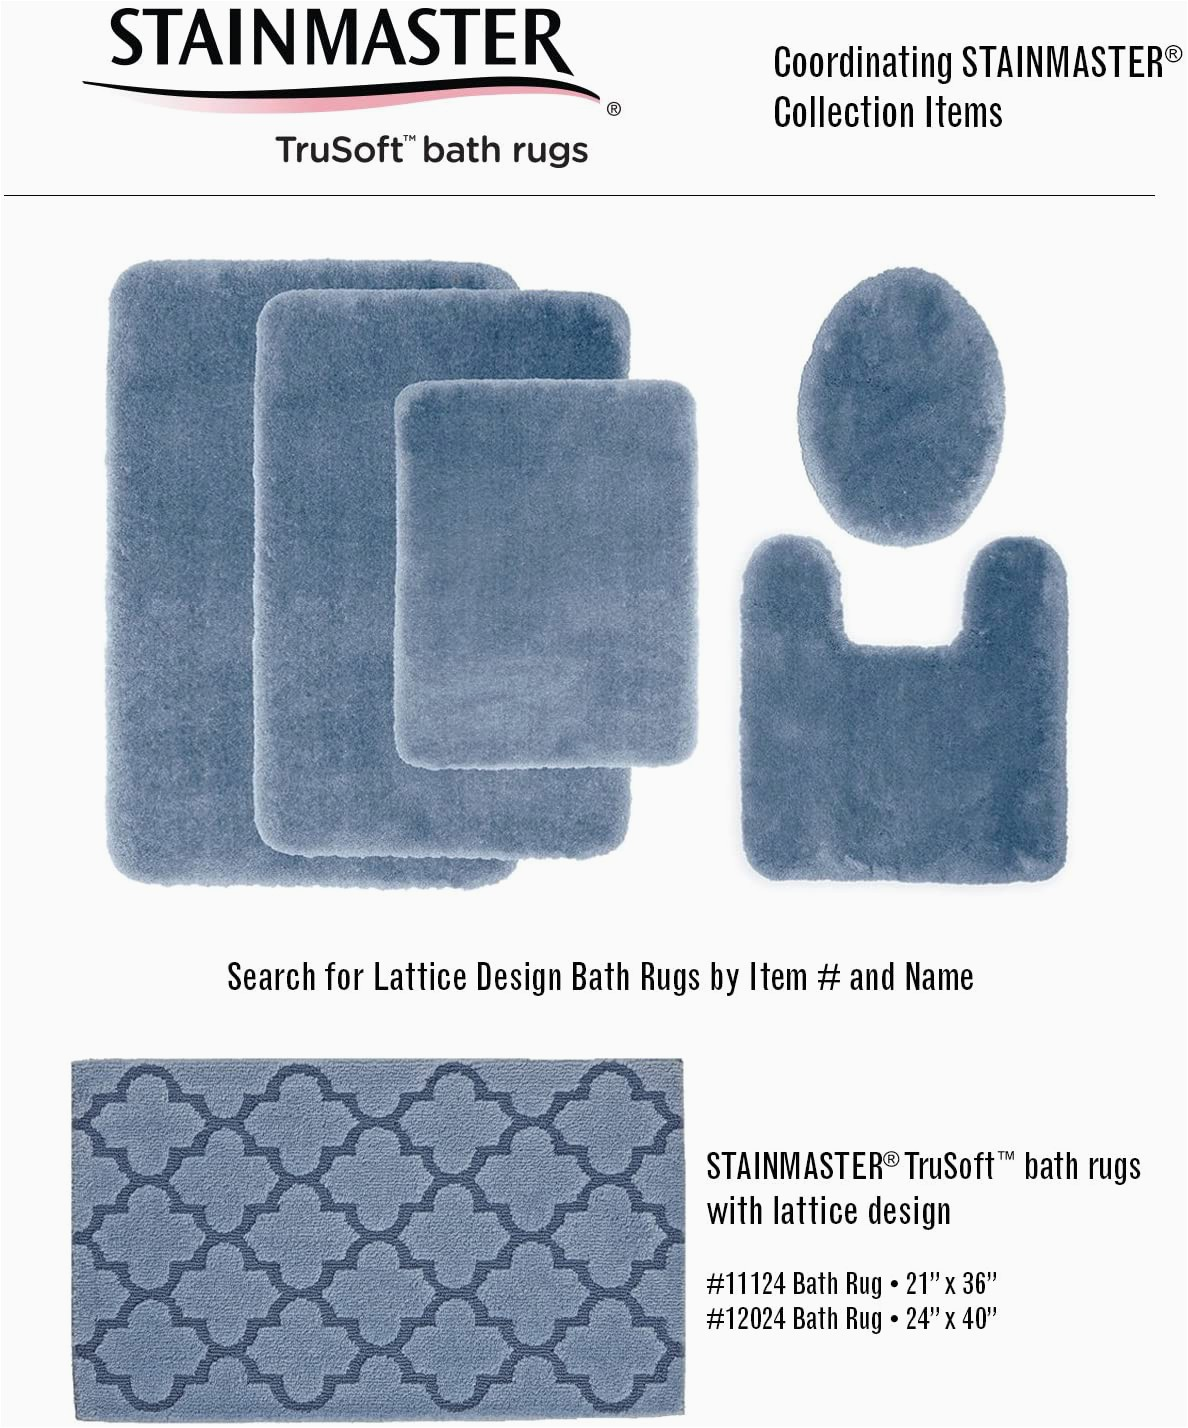 Jcpenney Contour Bath Rugs Stainmaster Trusoft Luxurious Contour Bath Rug 20 by 24 Inch Blue Sky